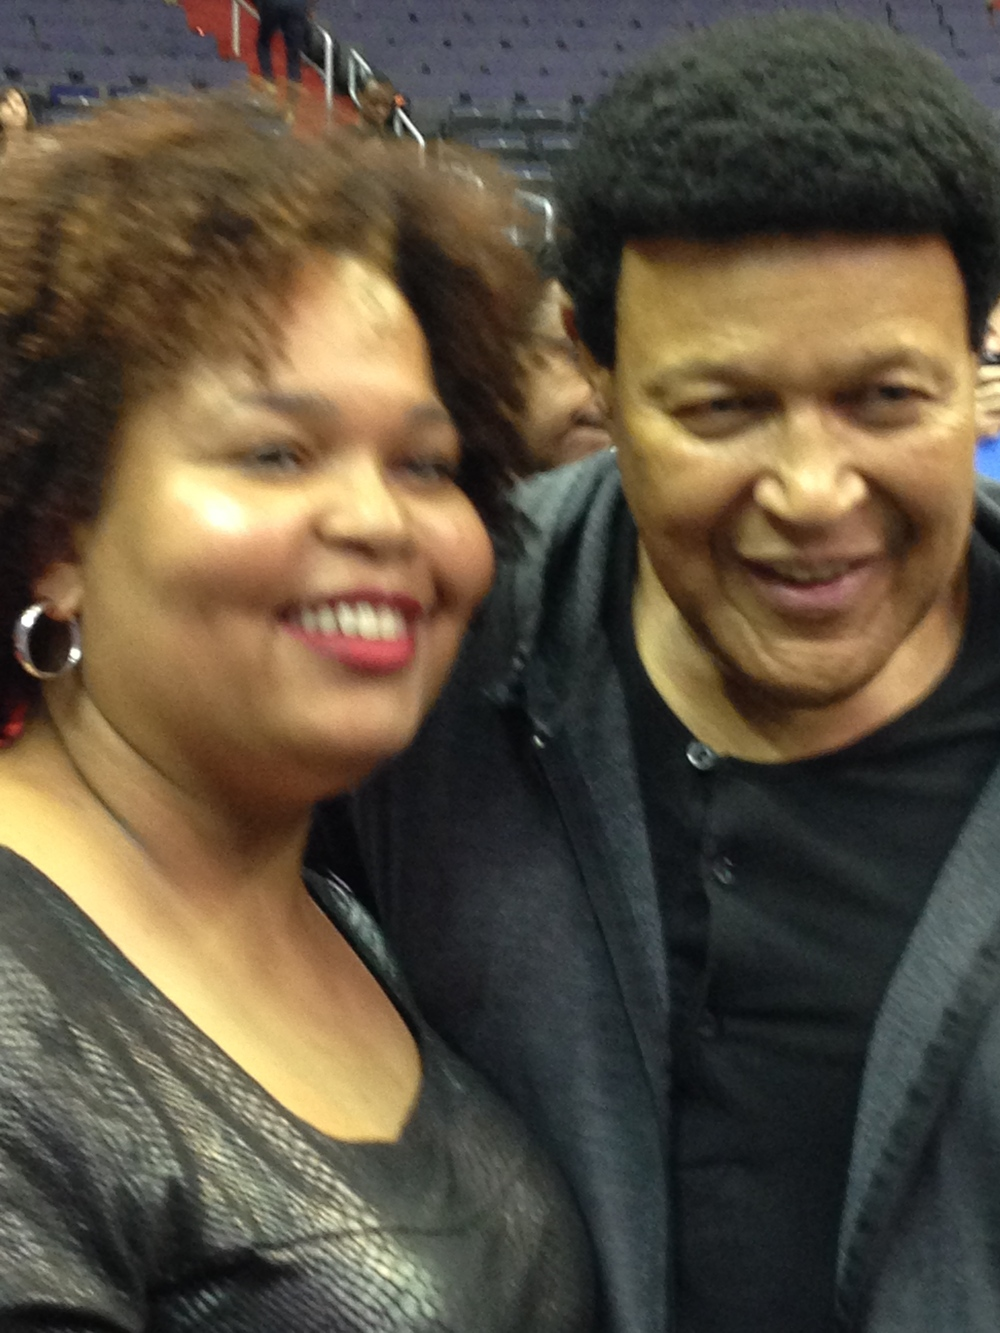 Chubby Checker at the Games